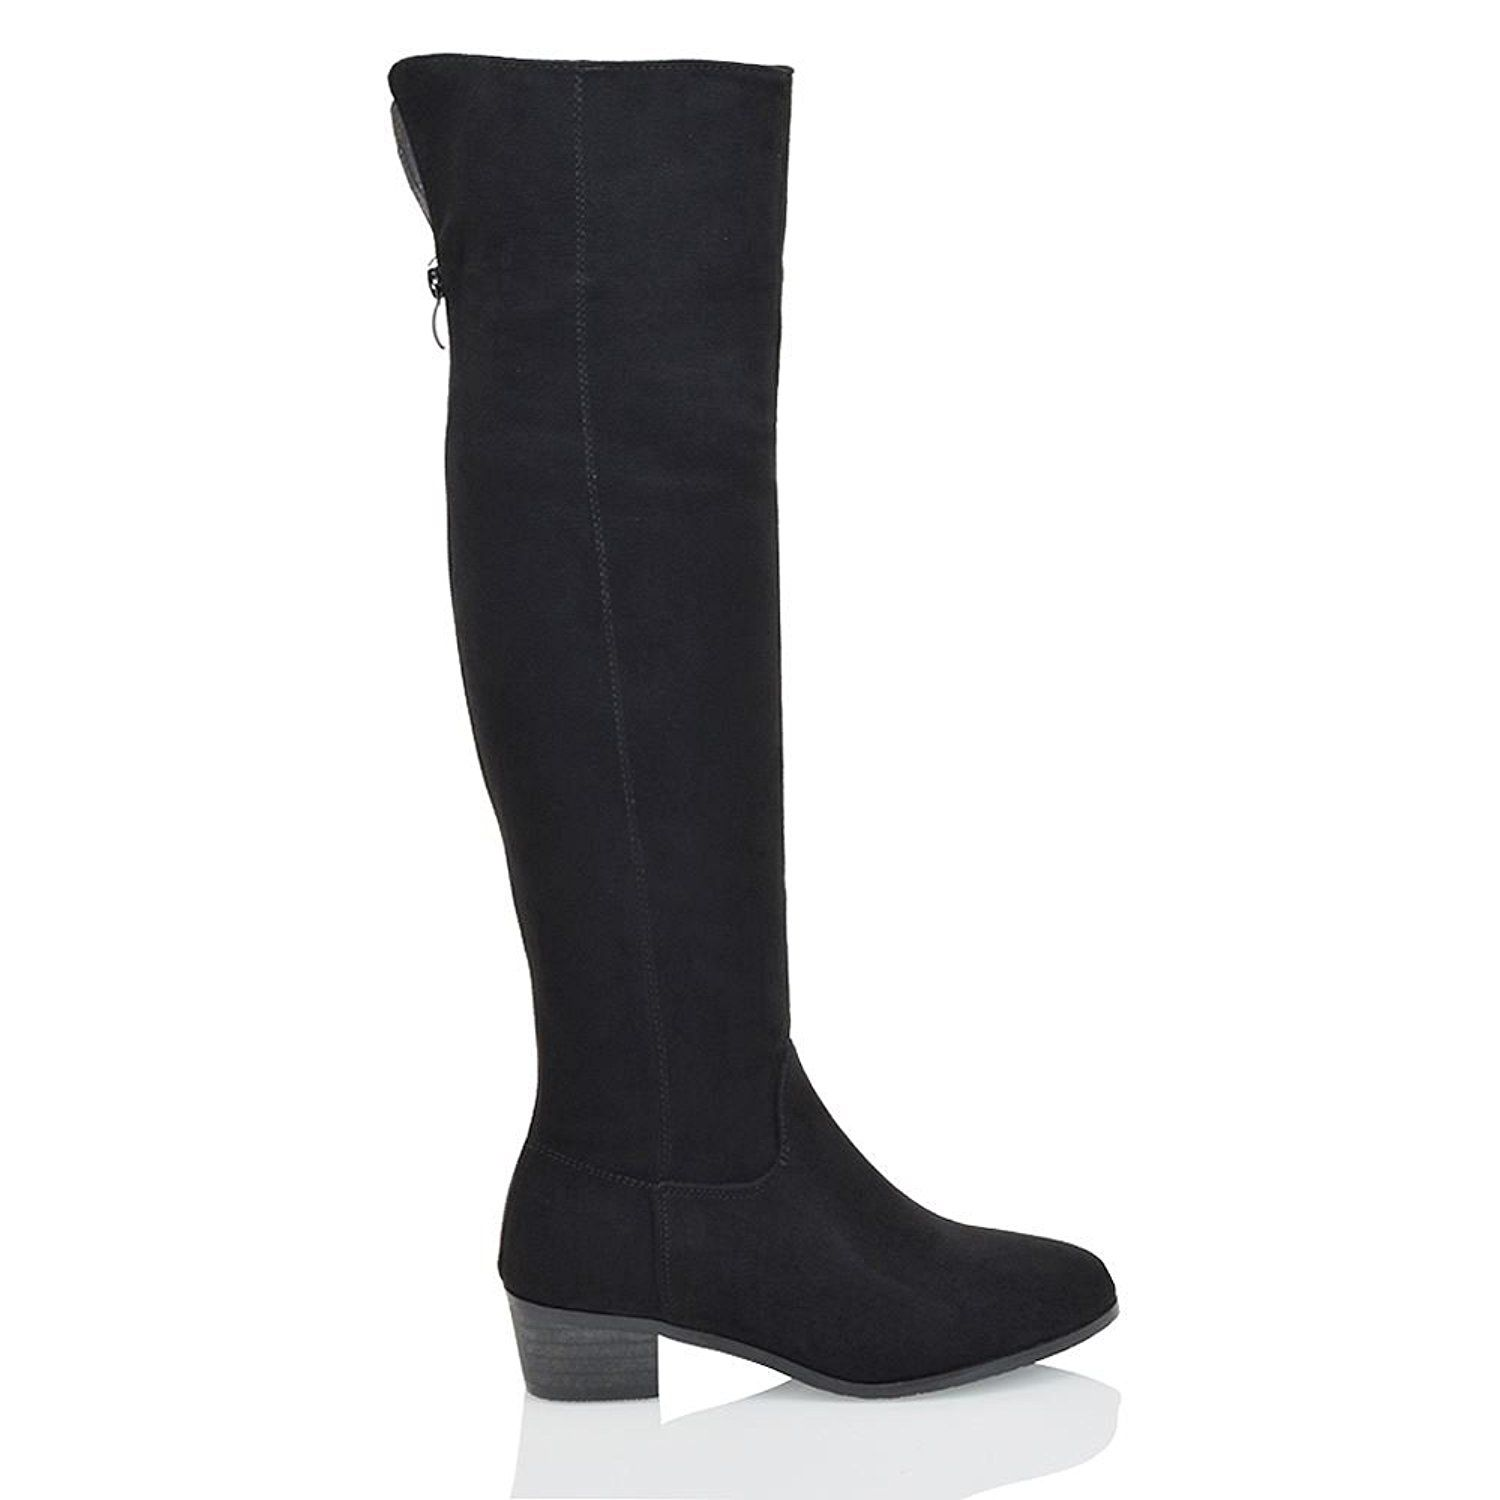 708fa180c27 Essex Glam Womens Knee High Faux Suede Biker Boots >>> This is an ...